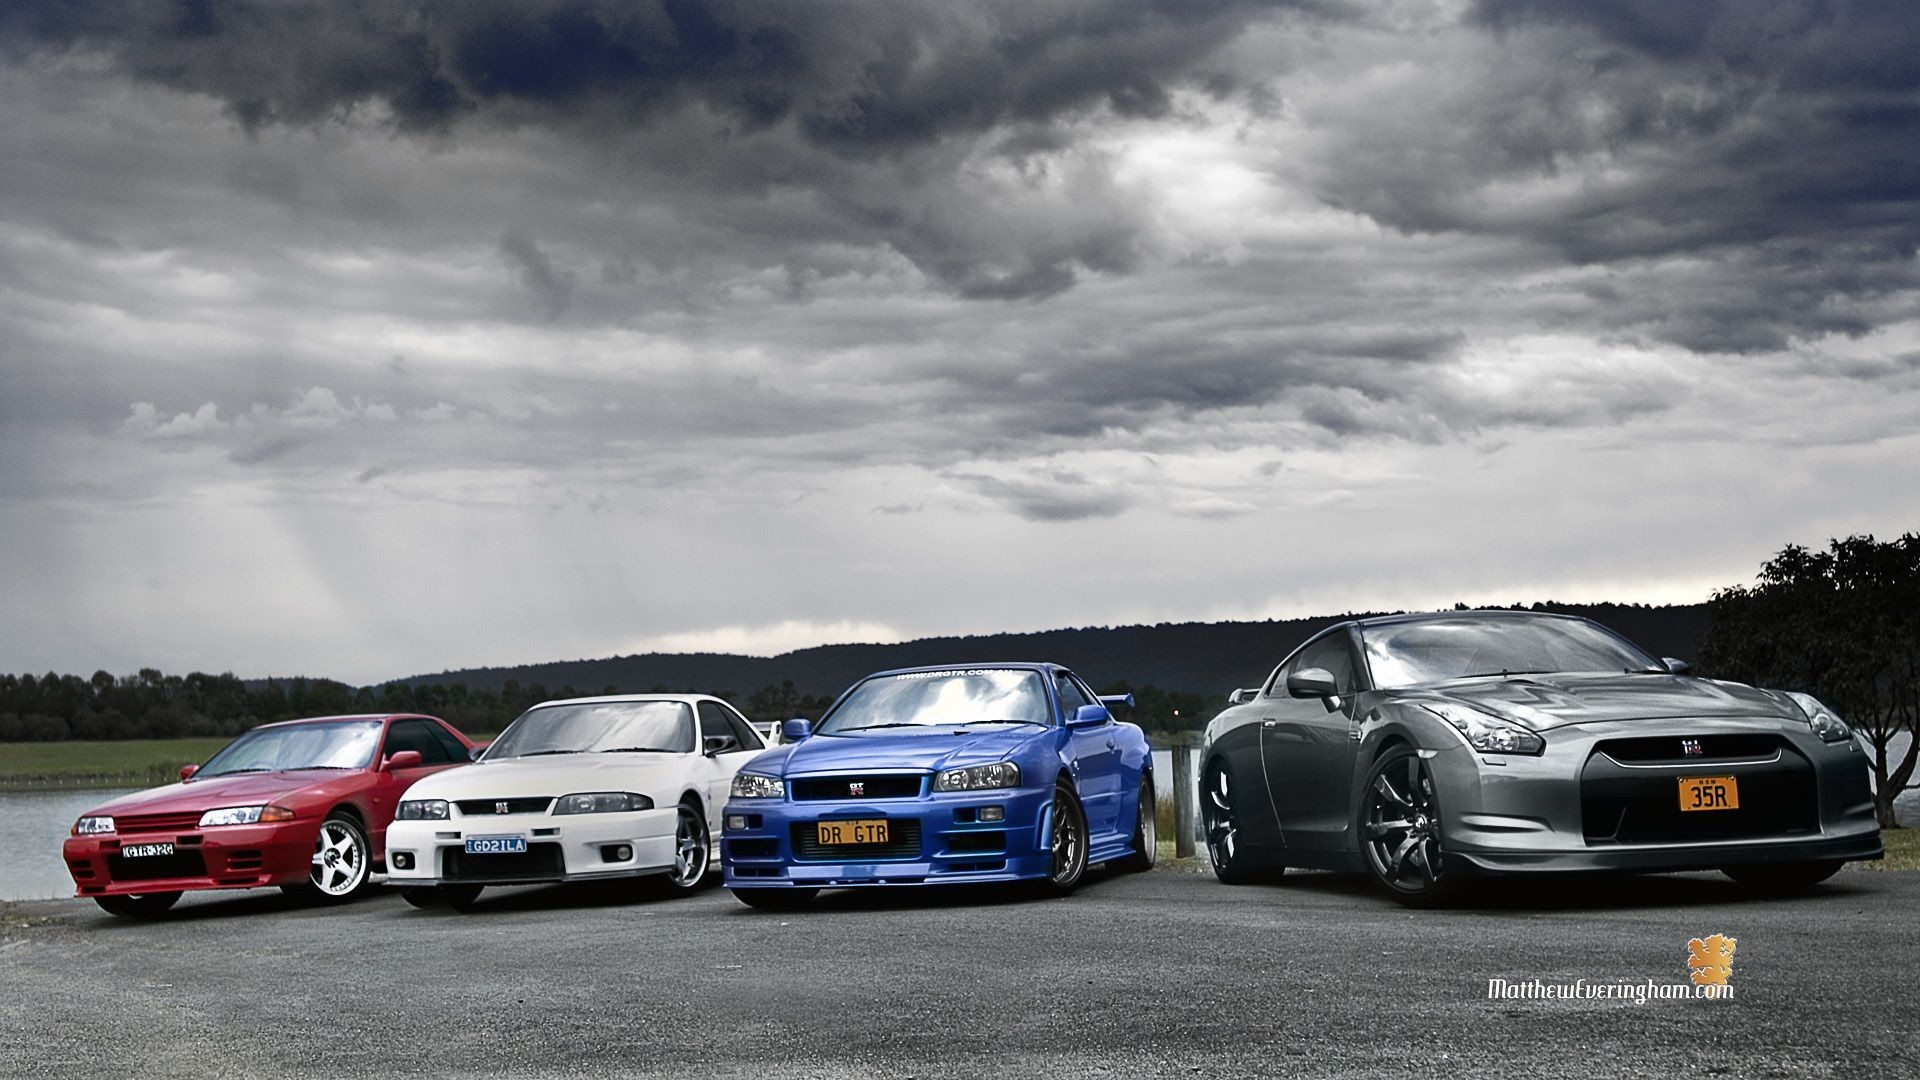 1920x1080 You Searched For Kereta Skyline Gtr R35 Wallpaper   Car Auto .